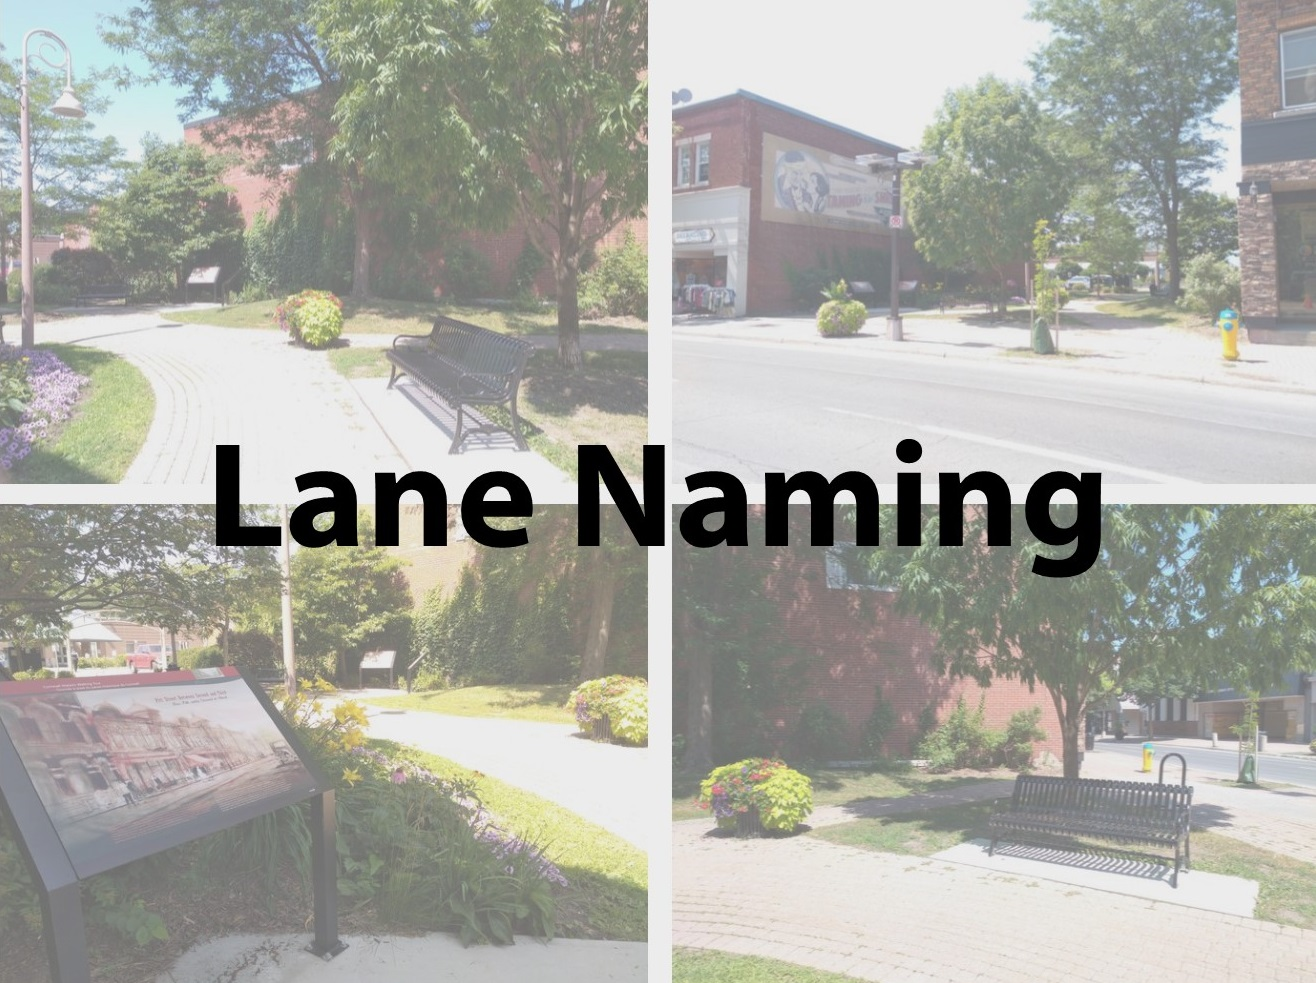 lane naming